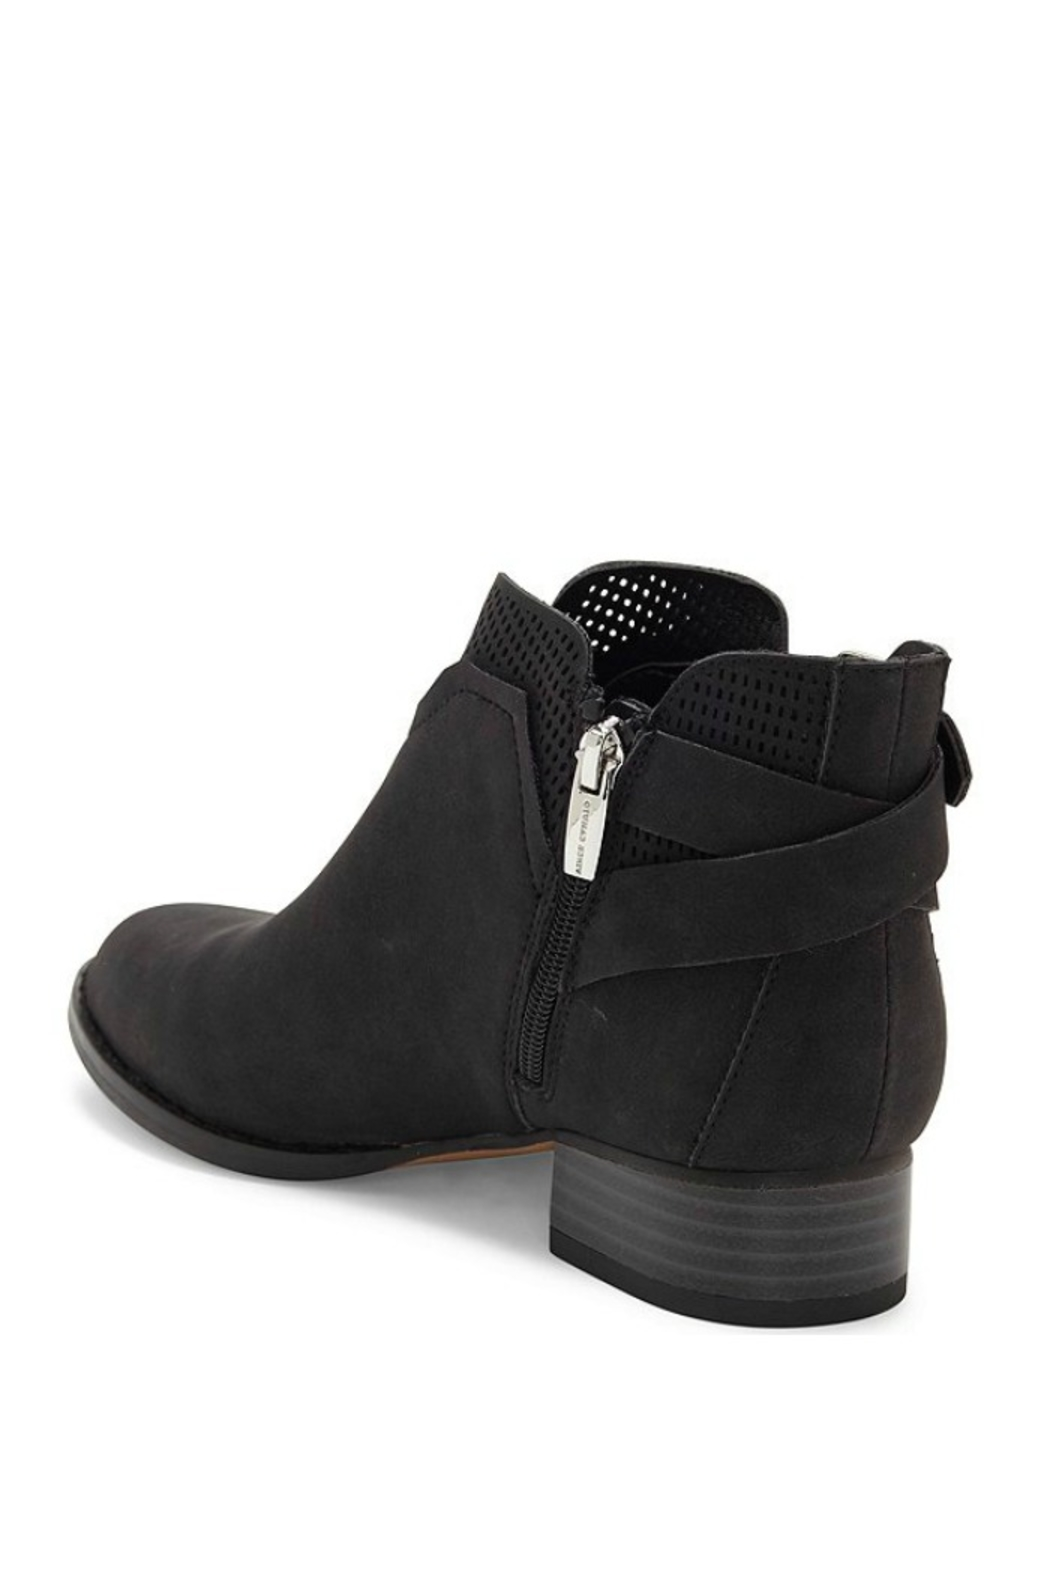 Vince Camuto Calliope Boot - Side Cropped Image